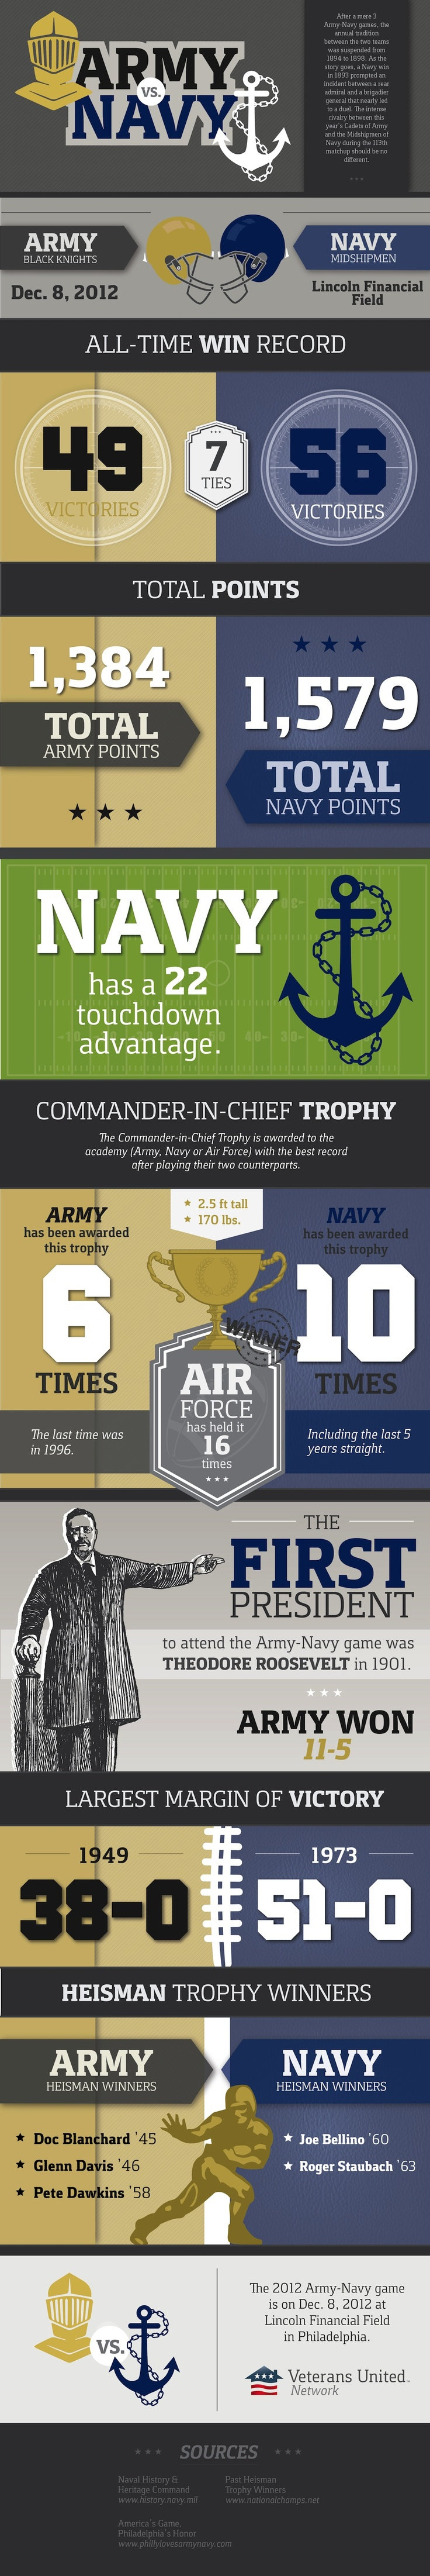 The 2012 Army Navy Game is coming up December 8th! Who are you rooting for?